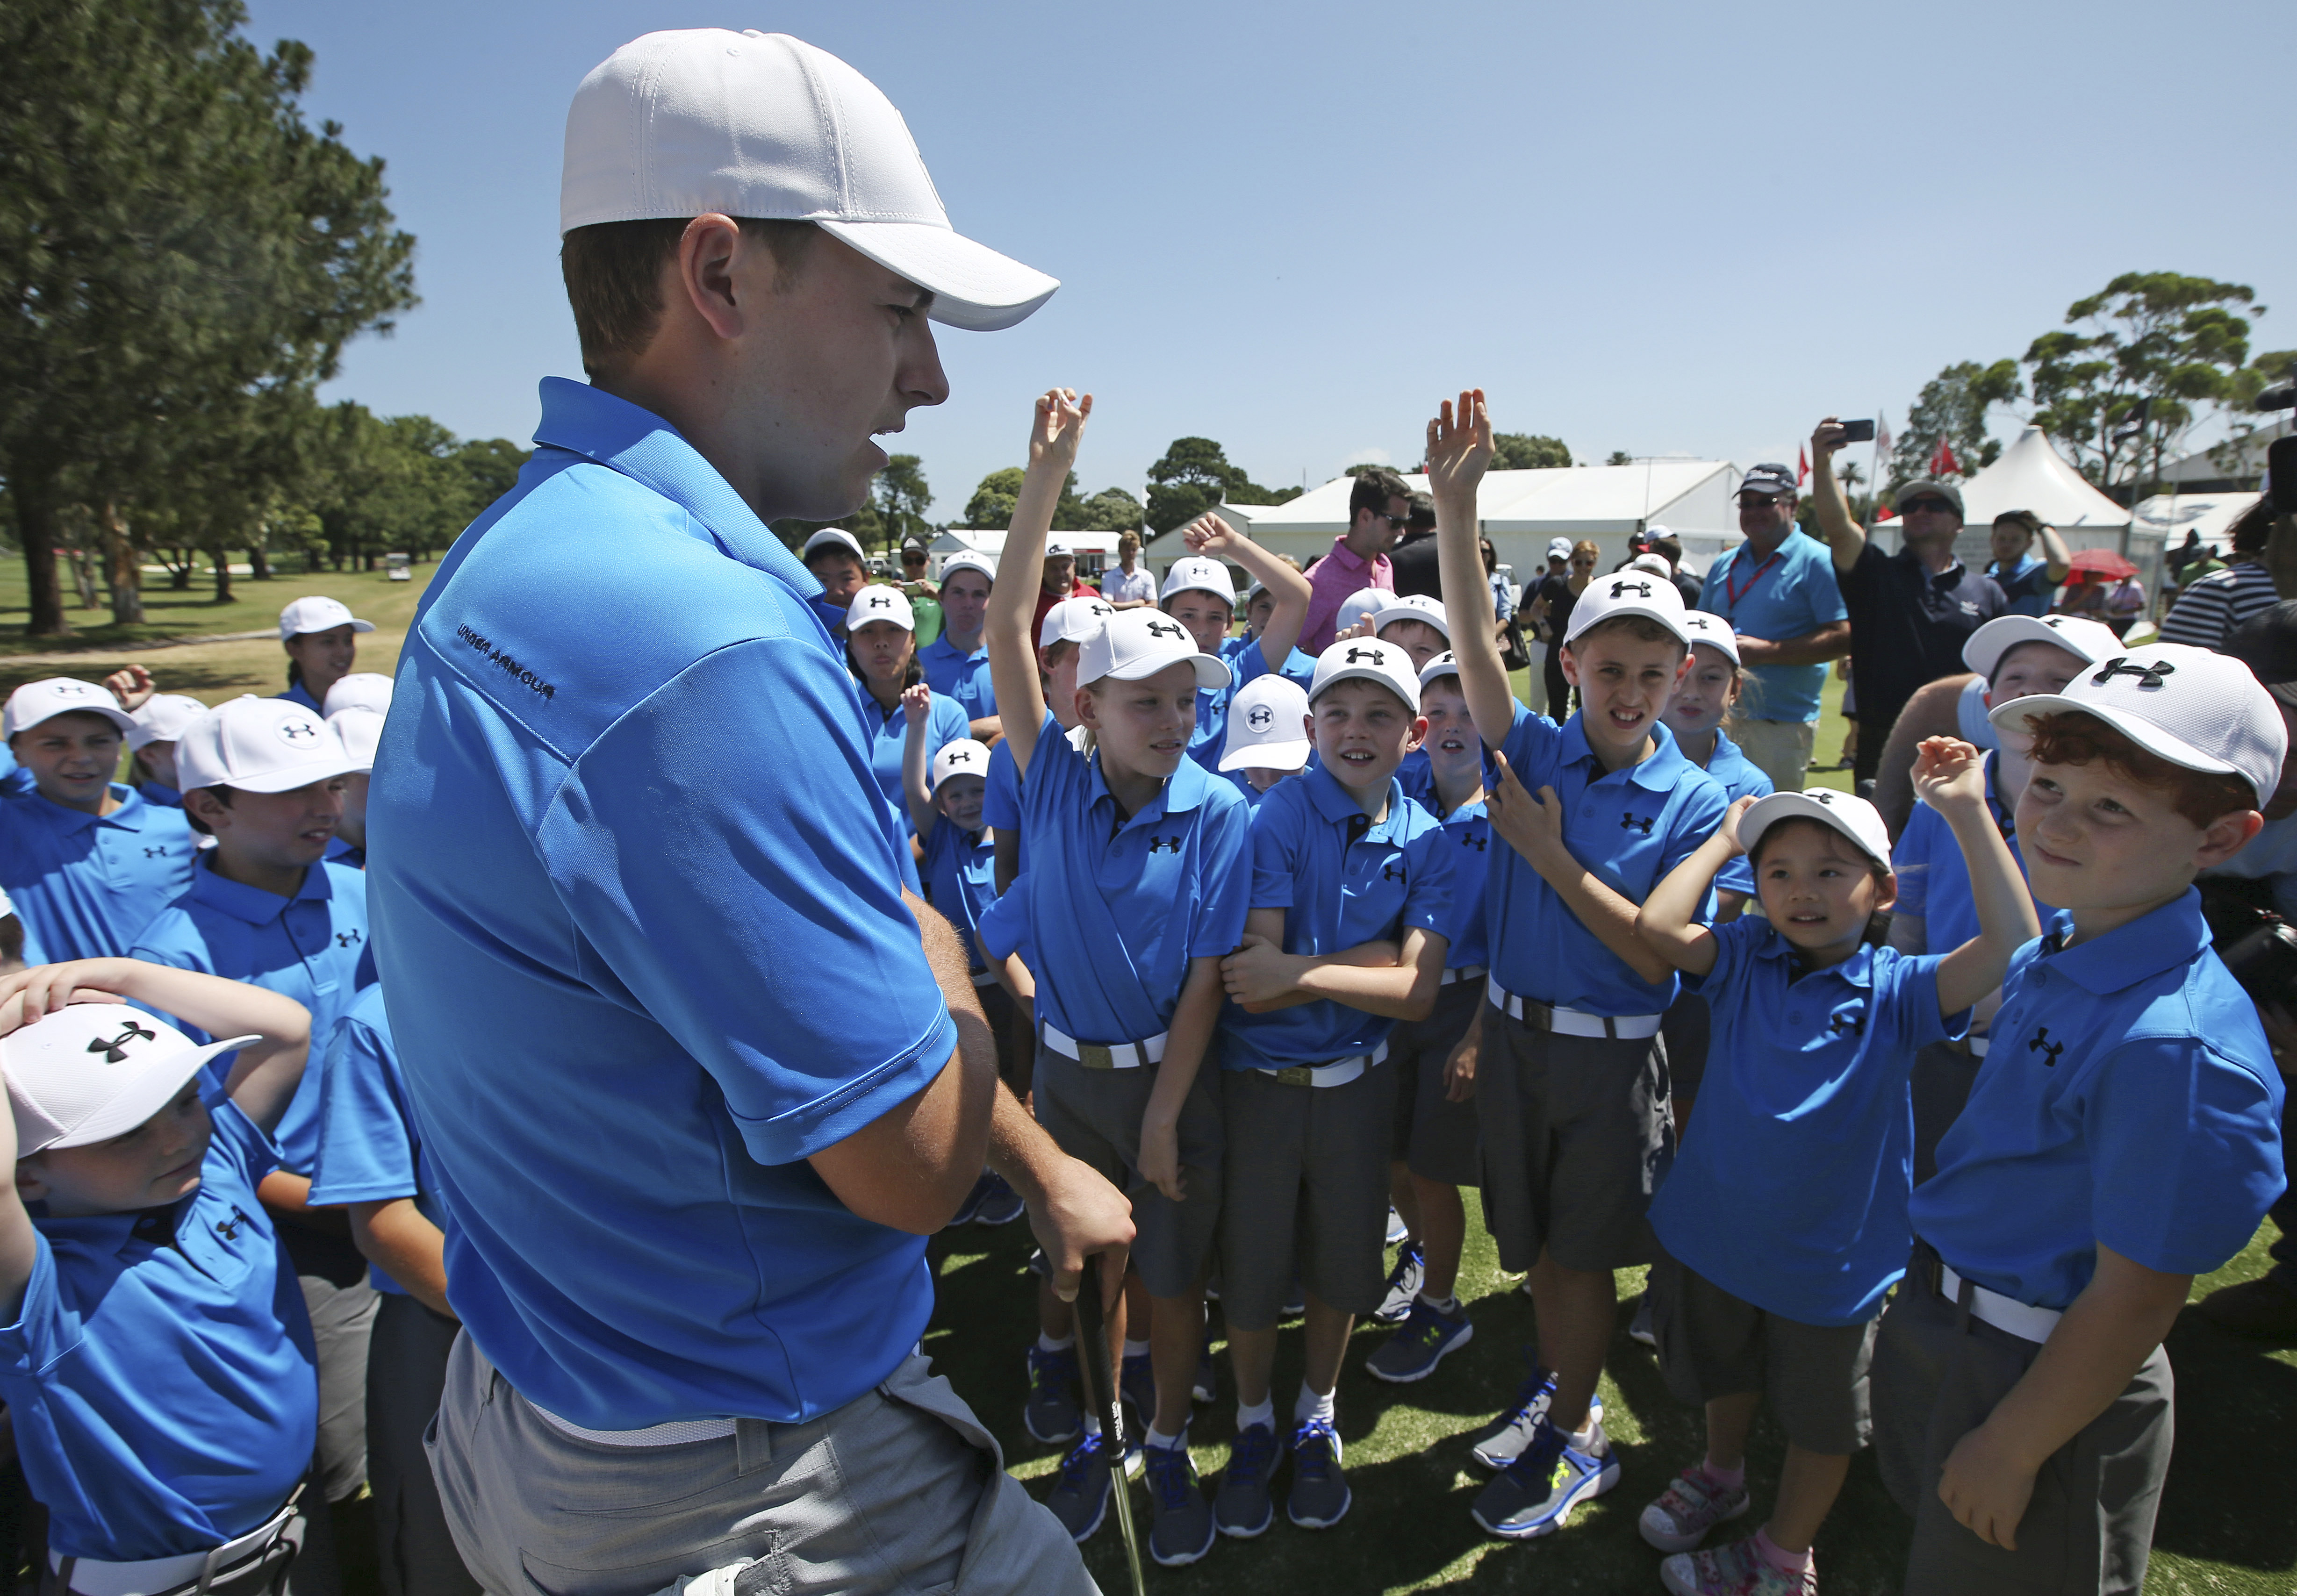 American golfer Jordan Spieth, center, answers a few questions as he runs a clinic for young golfers at the Australian Golf Club in Sydney, Tuesday, Nov. 24, 2015. Spieth will defend his Australian Open title starting Thursday. (AP Photo/Rick Rycroft)